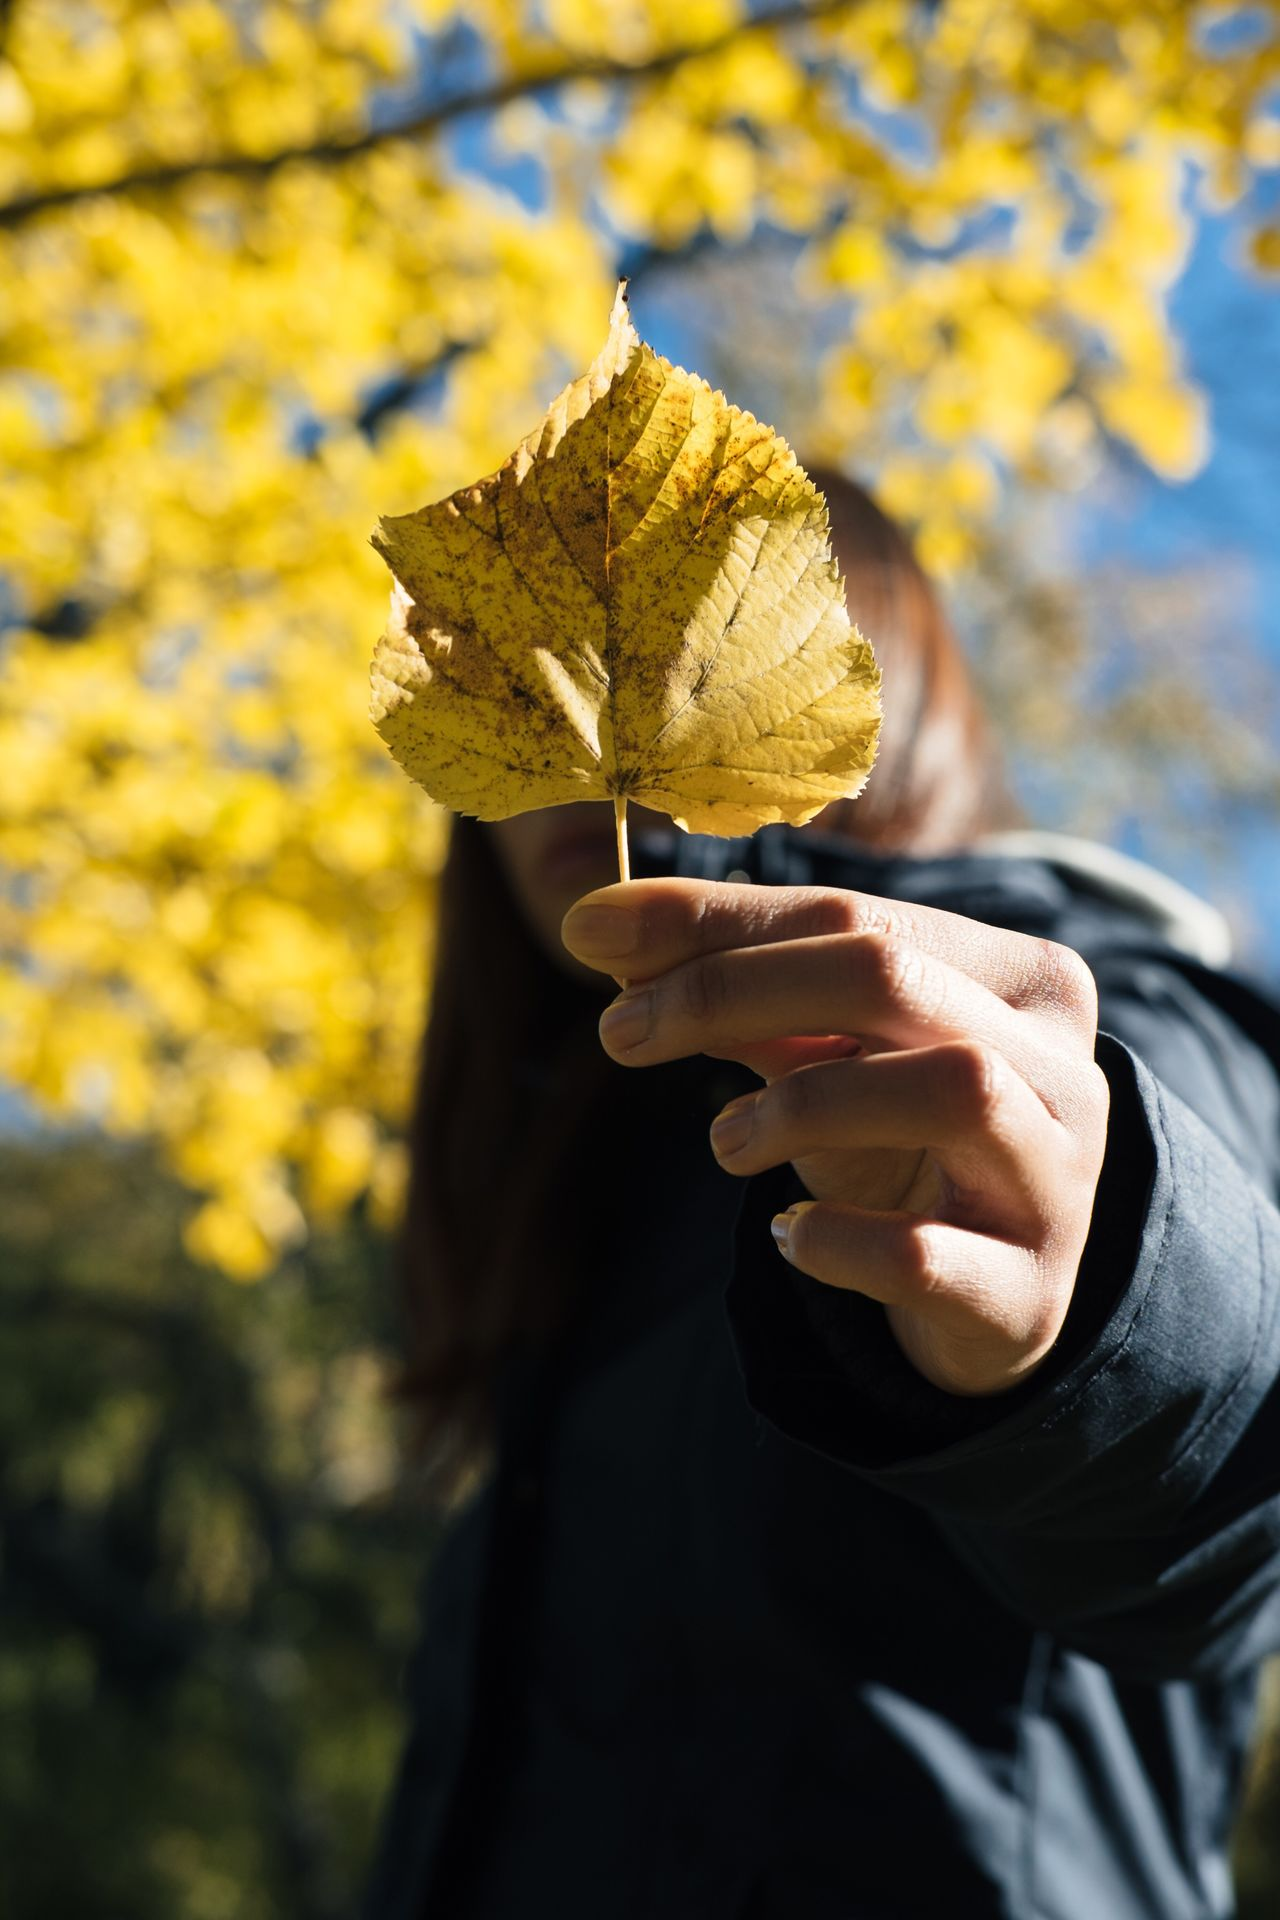 Autumn Human Hand Leaf One Person Change Holding Outdoors Human Body Part Yellow Real People Day Close-up Nature Tree Adult People FUJIFILM X-T1